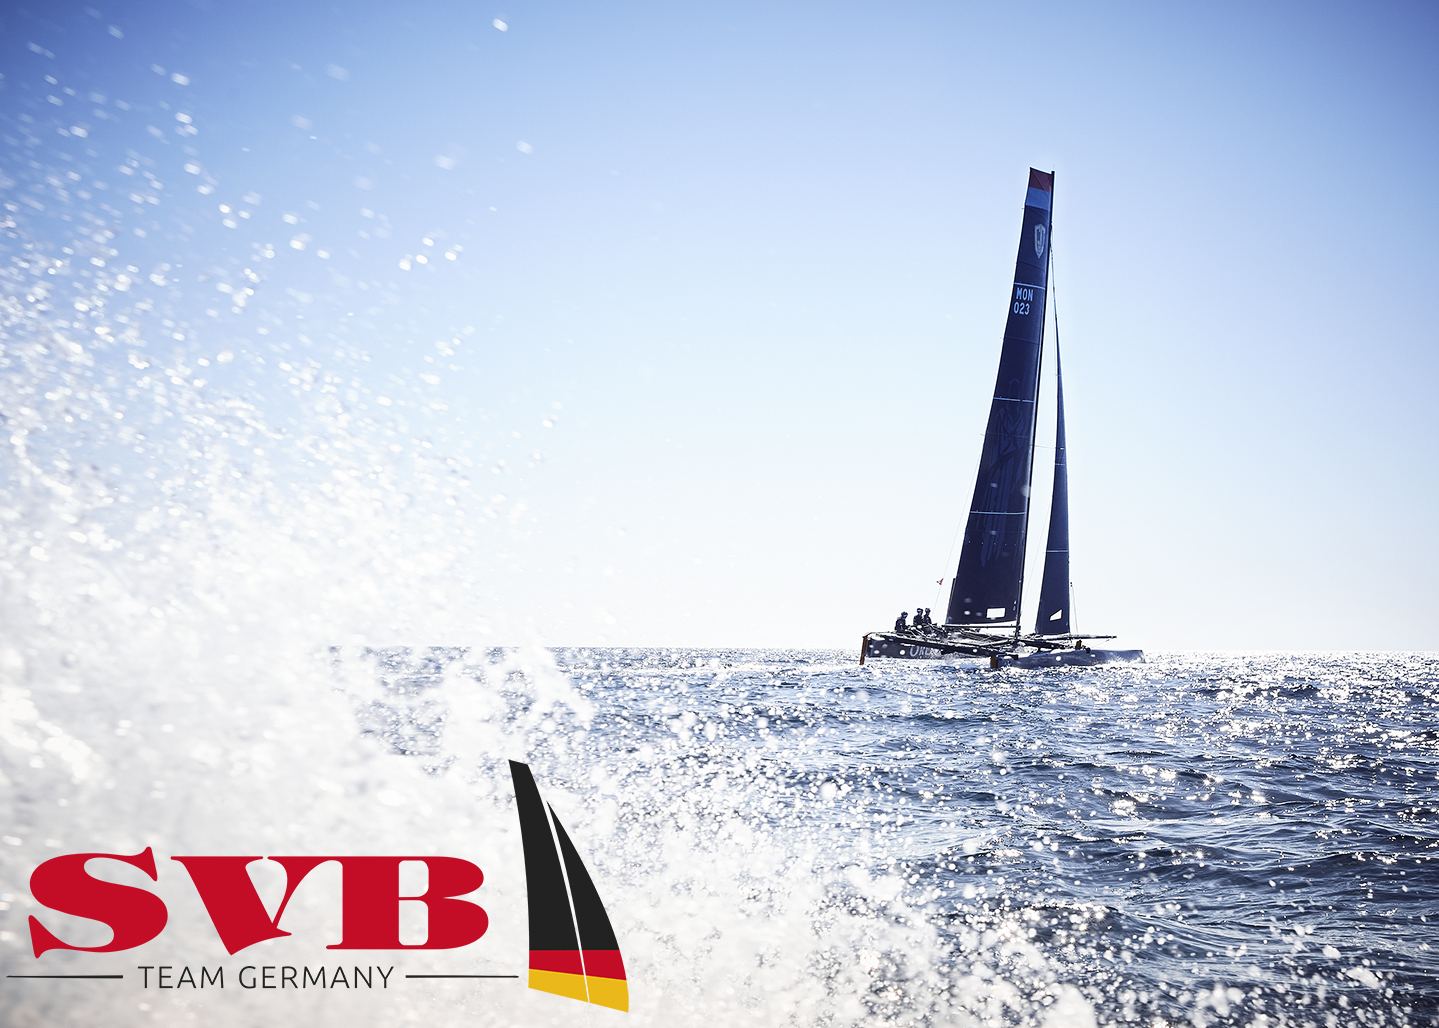 SVB-Sailing Team / Youth America's Cup Team GER